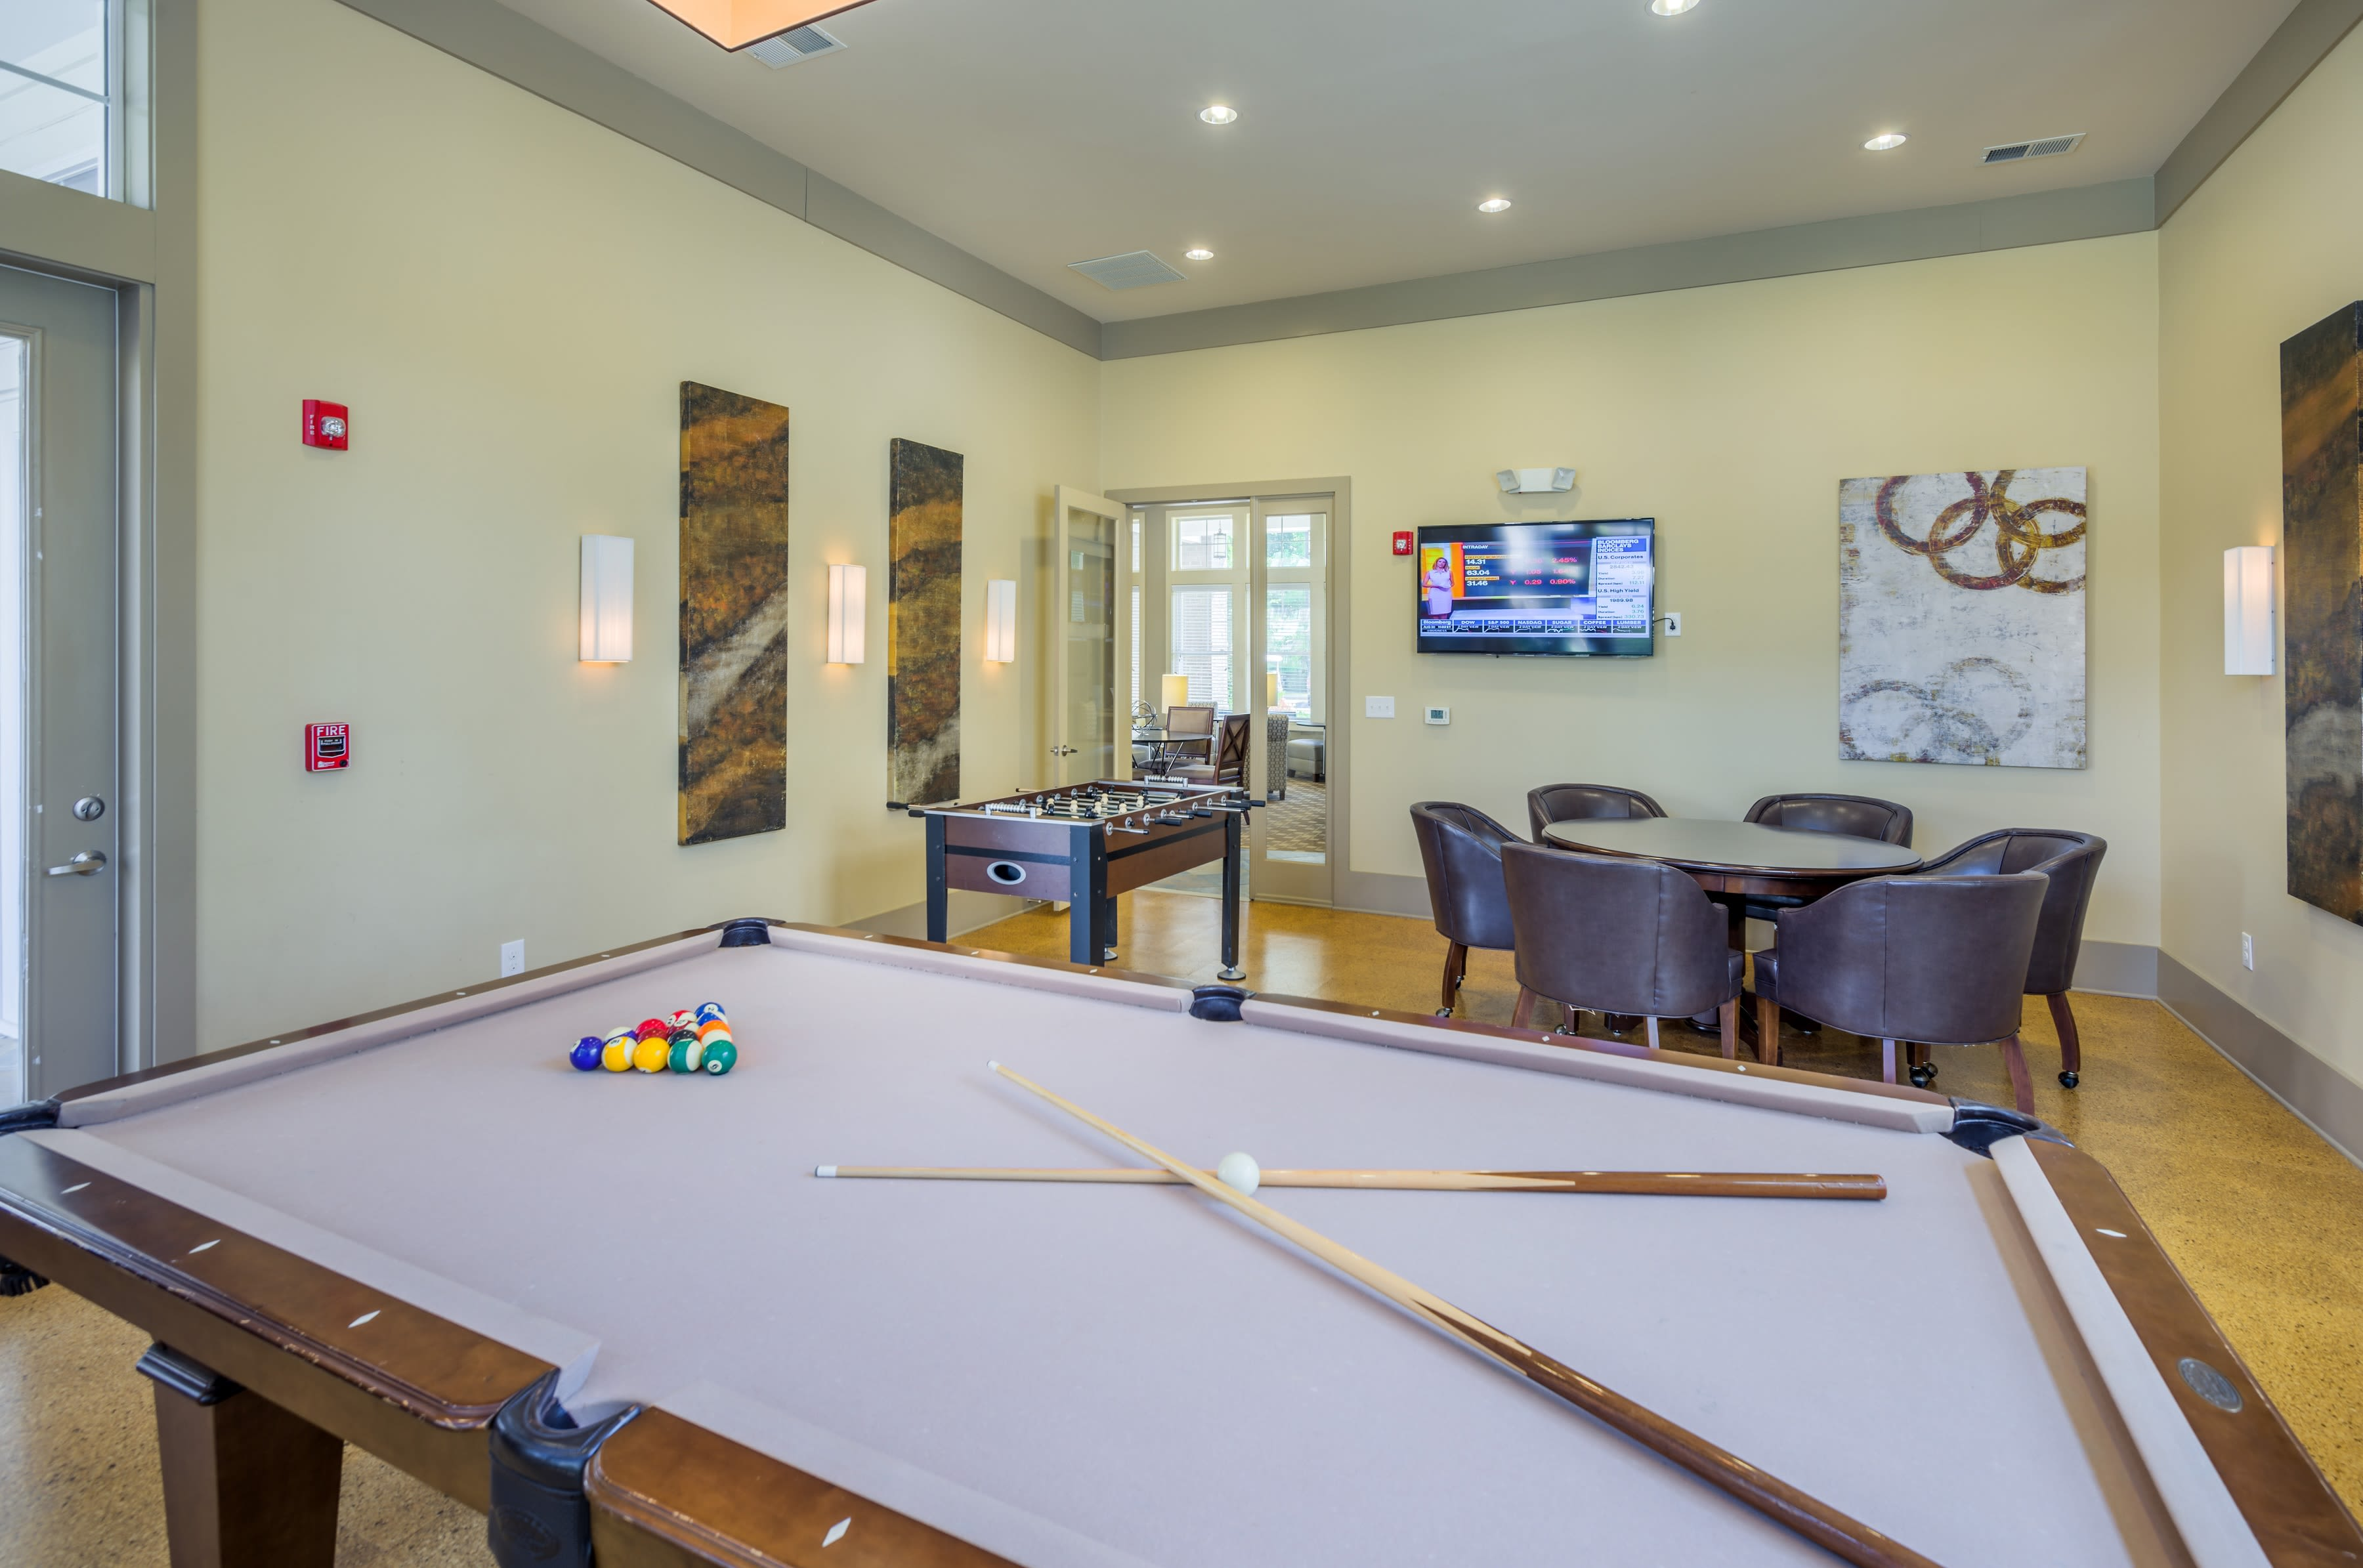 Billiards table and clubroom at Sterling Town Center in Raleigh, North Carolina